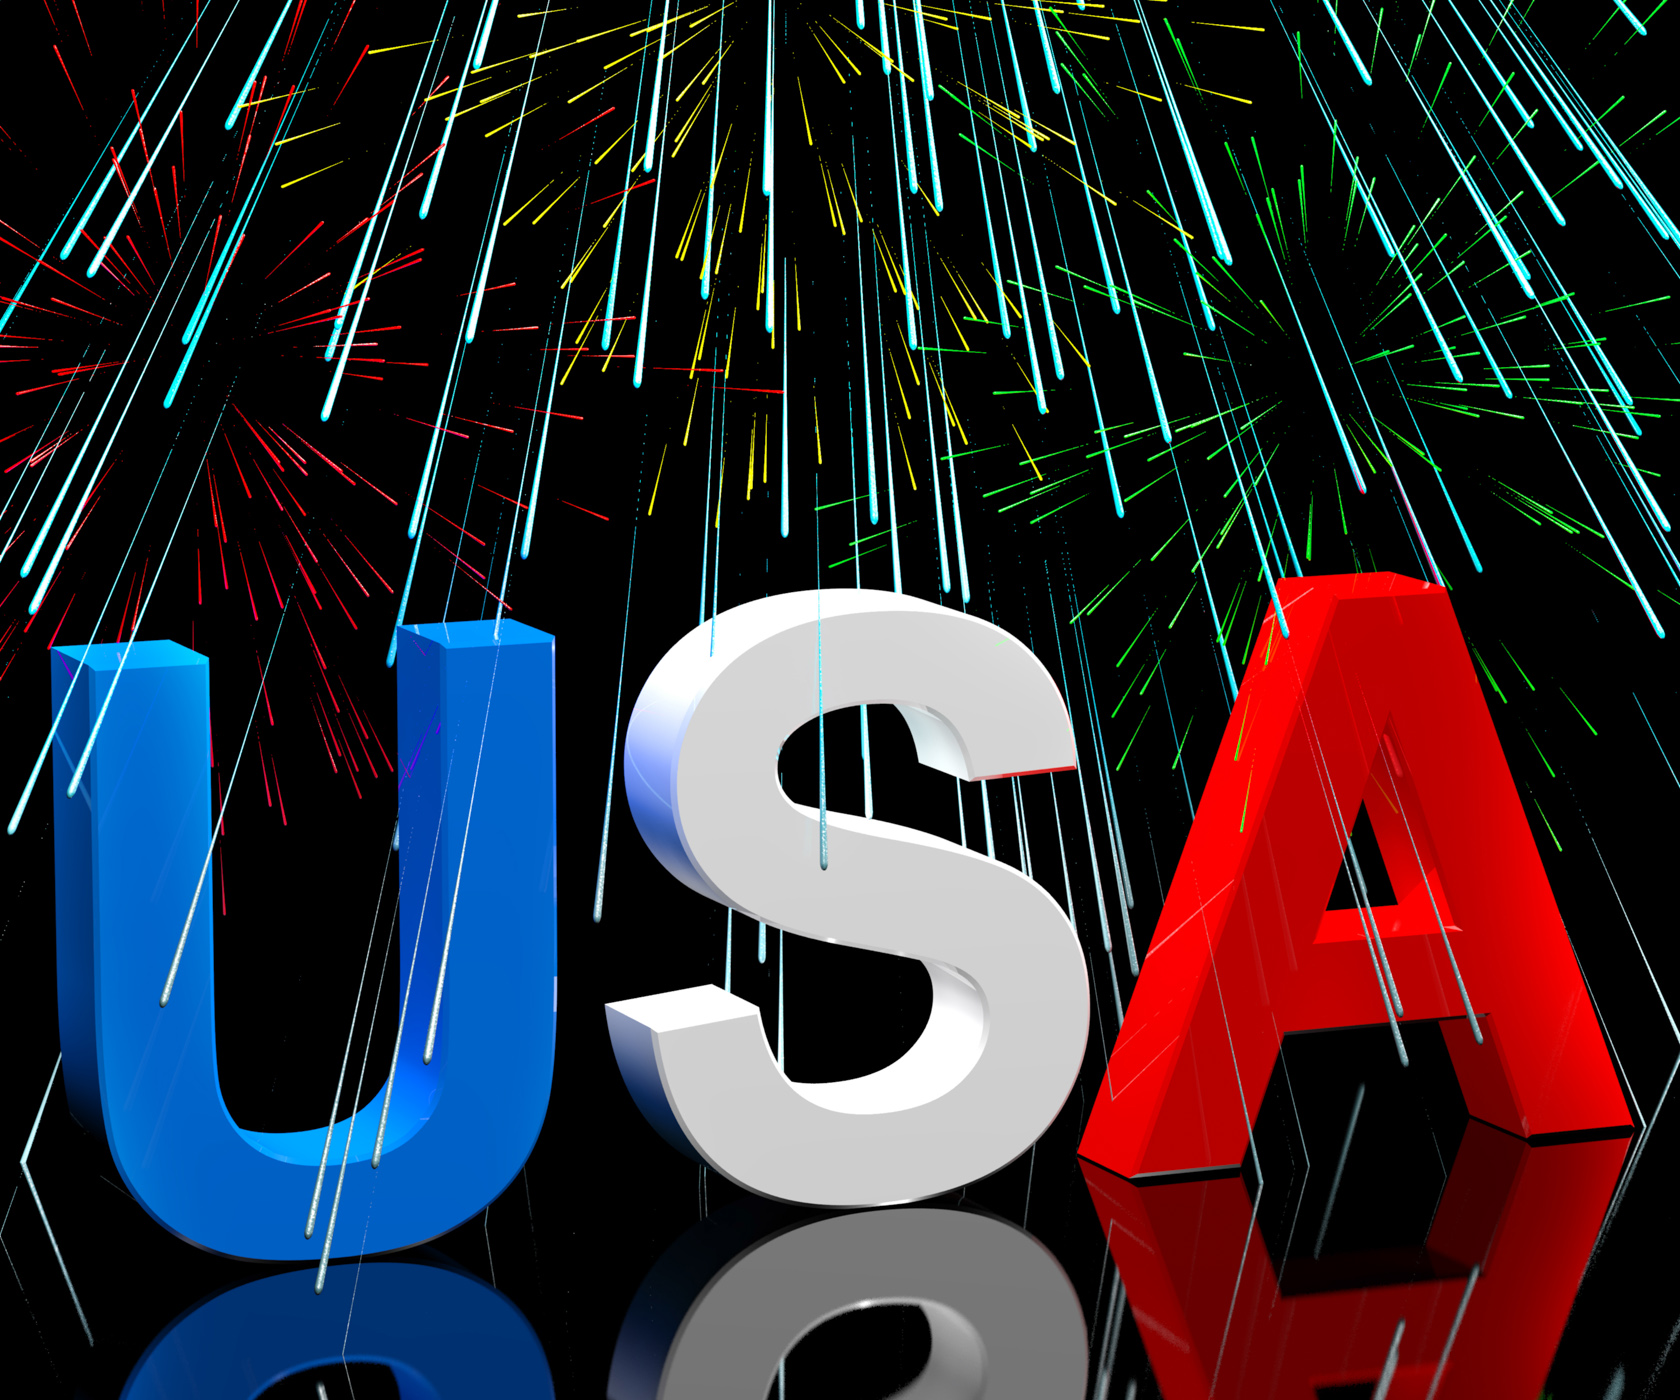 Usa word and fireworks as symbol for america and patriotism photo